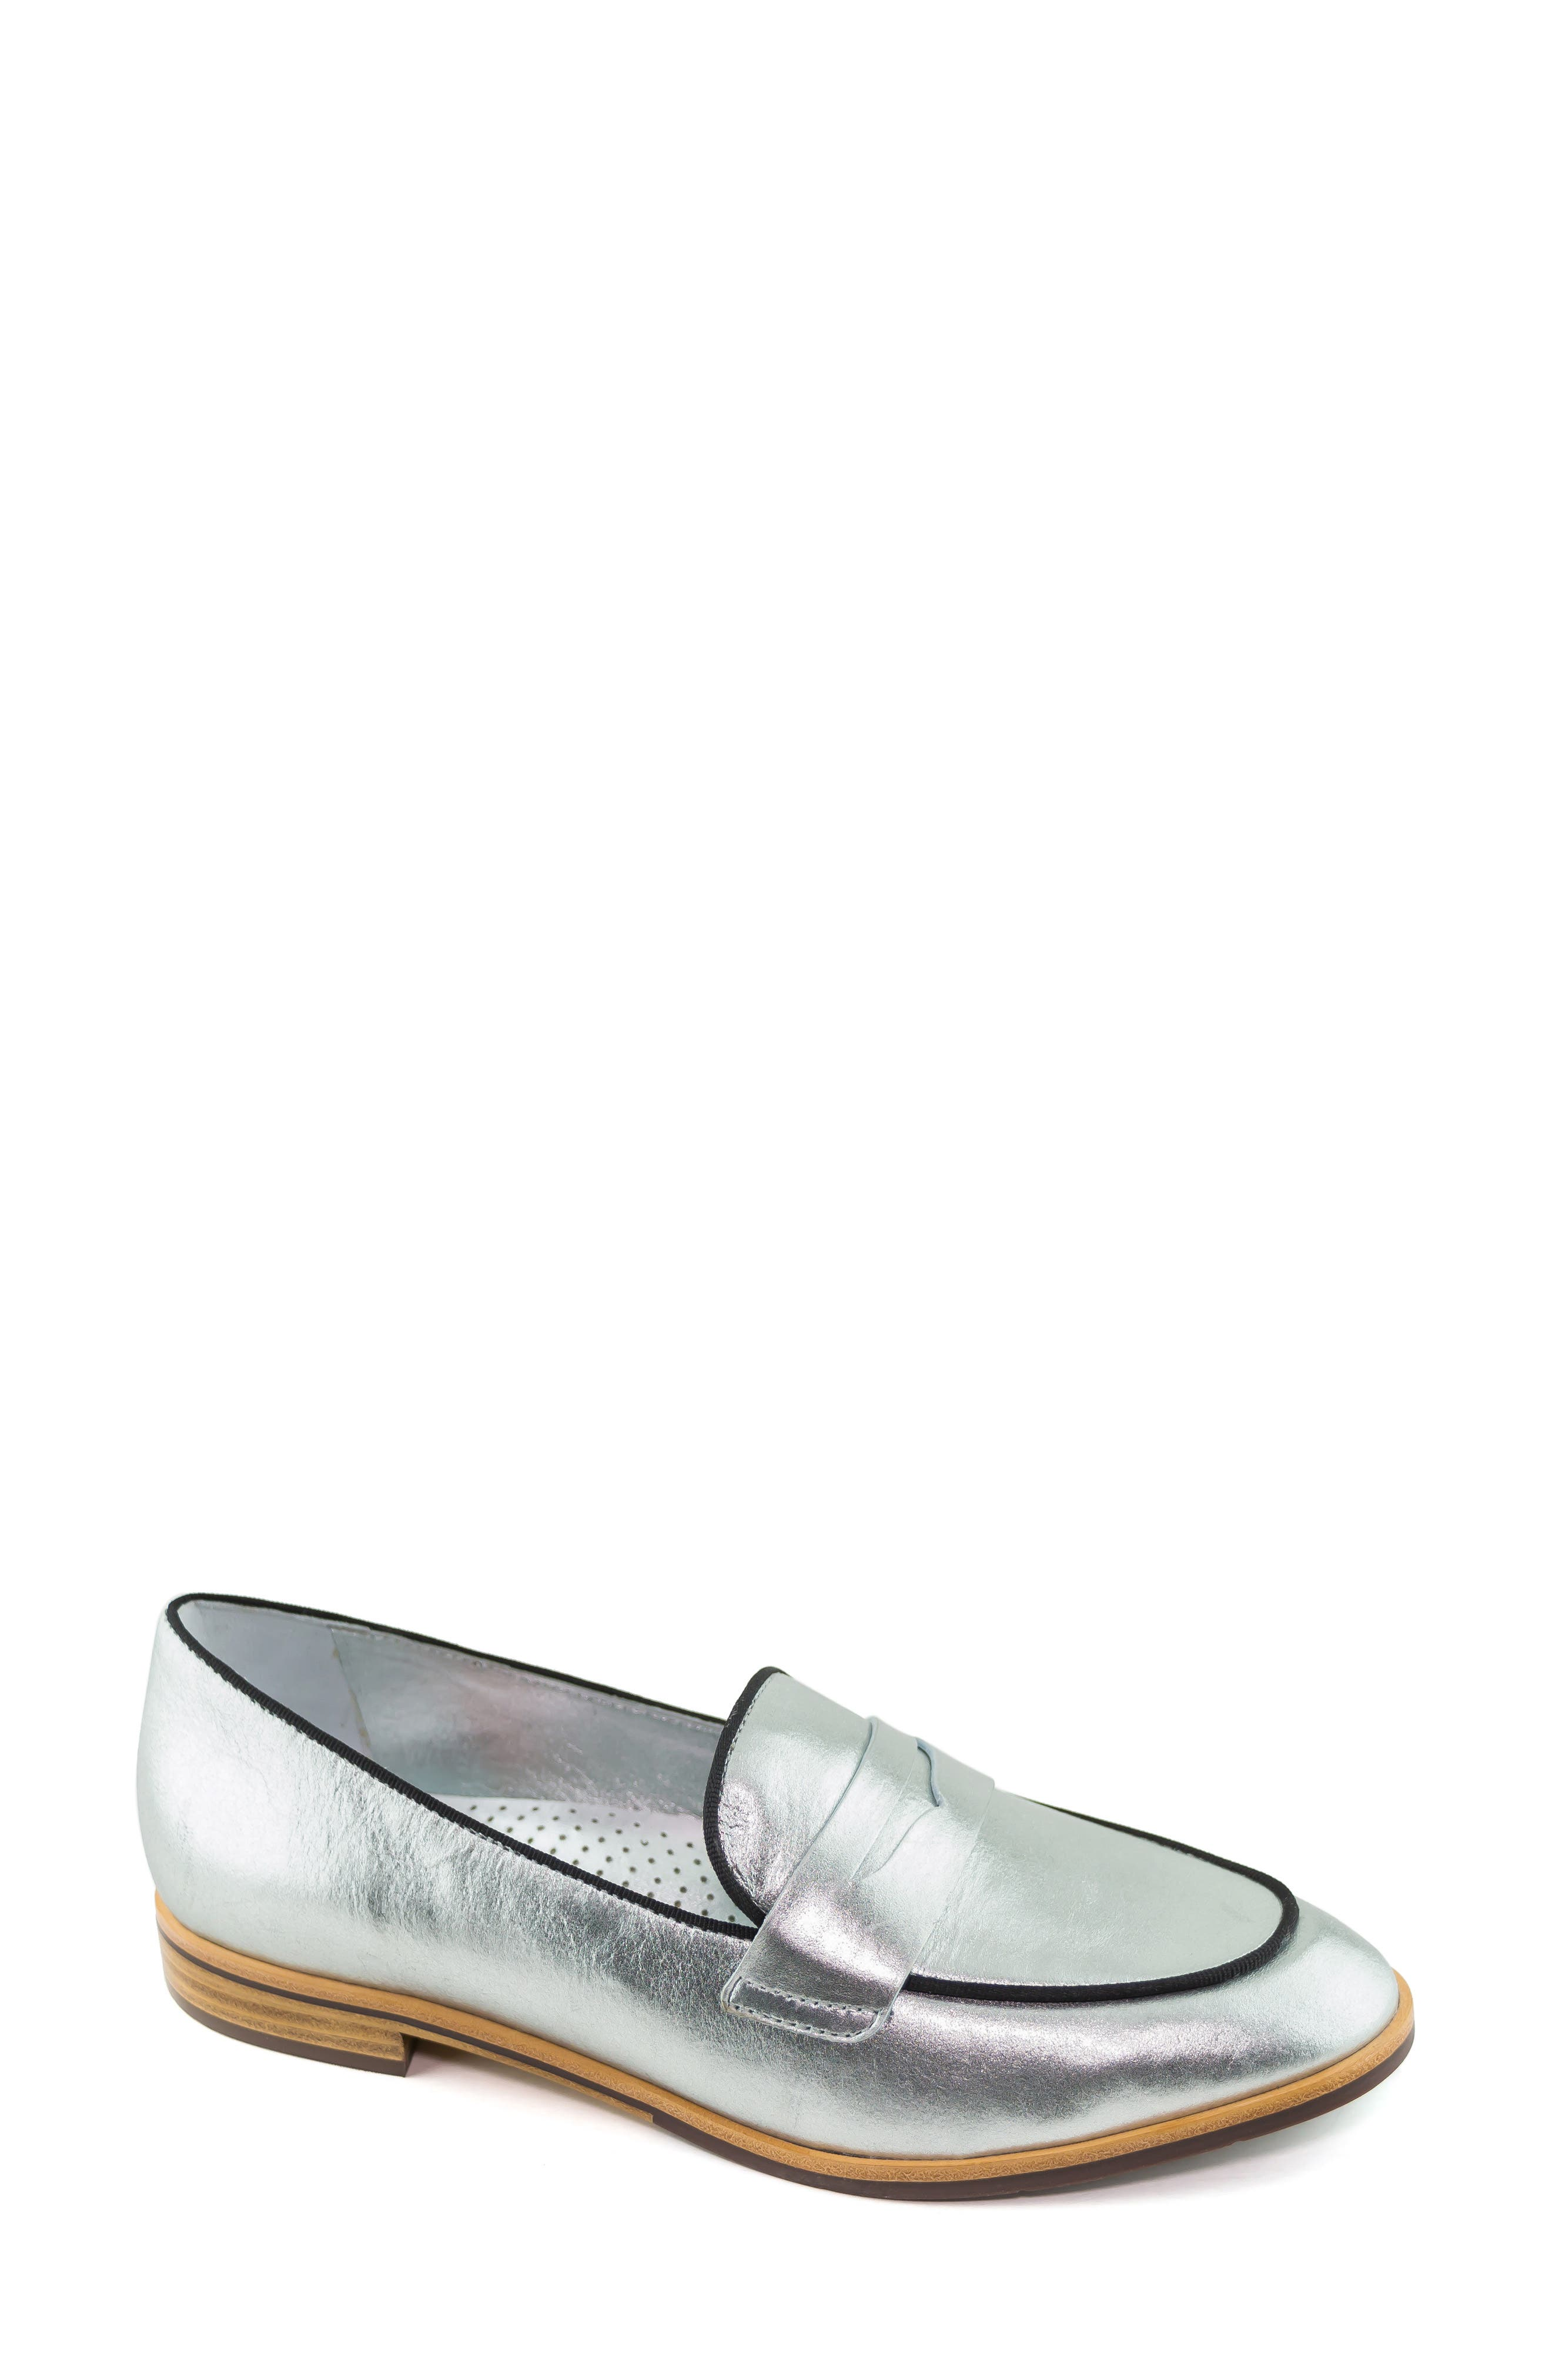 MARC JOSEPH NEW YORK Bryant Park Loafer, Main, color, GIPSY SILVER LEATHER